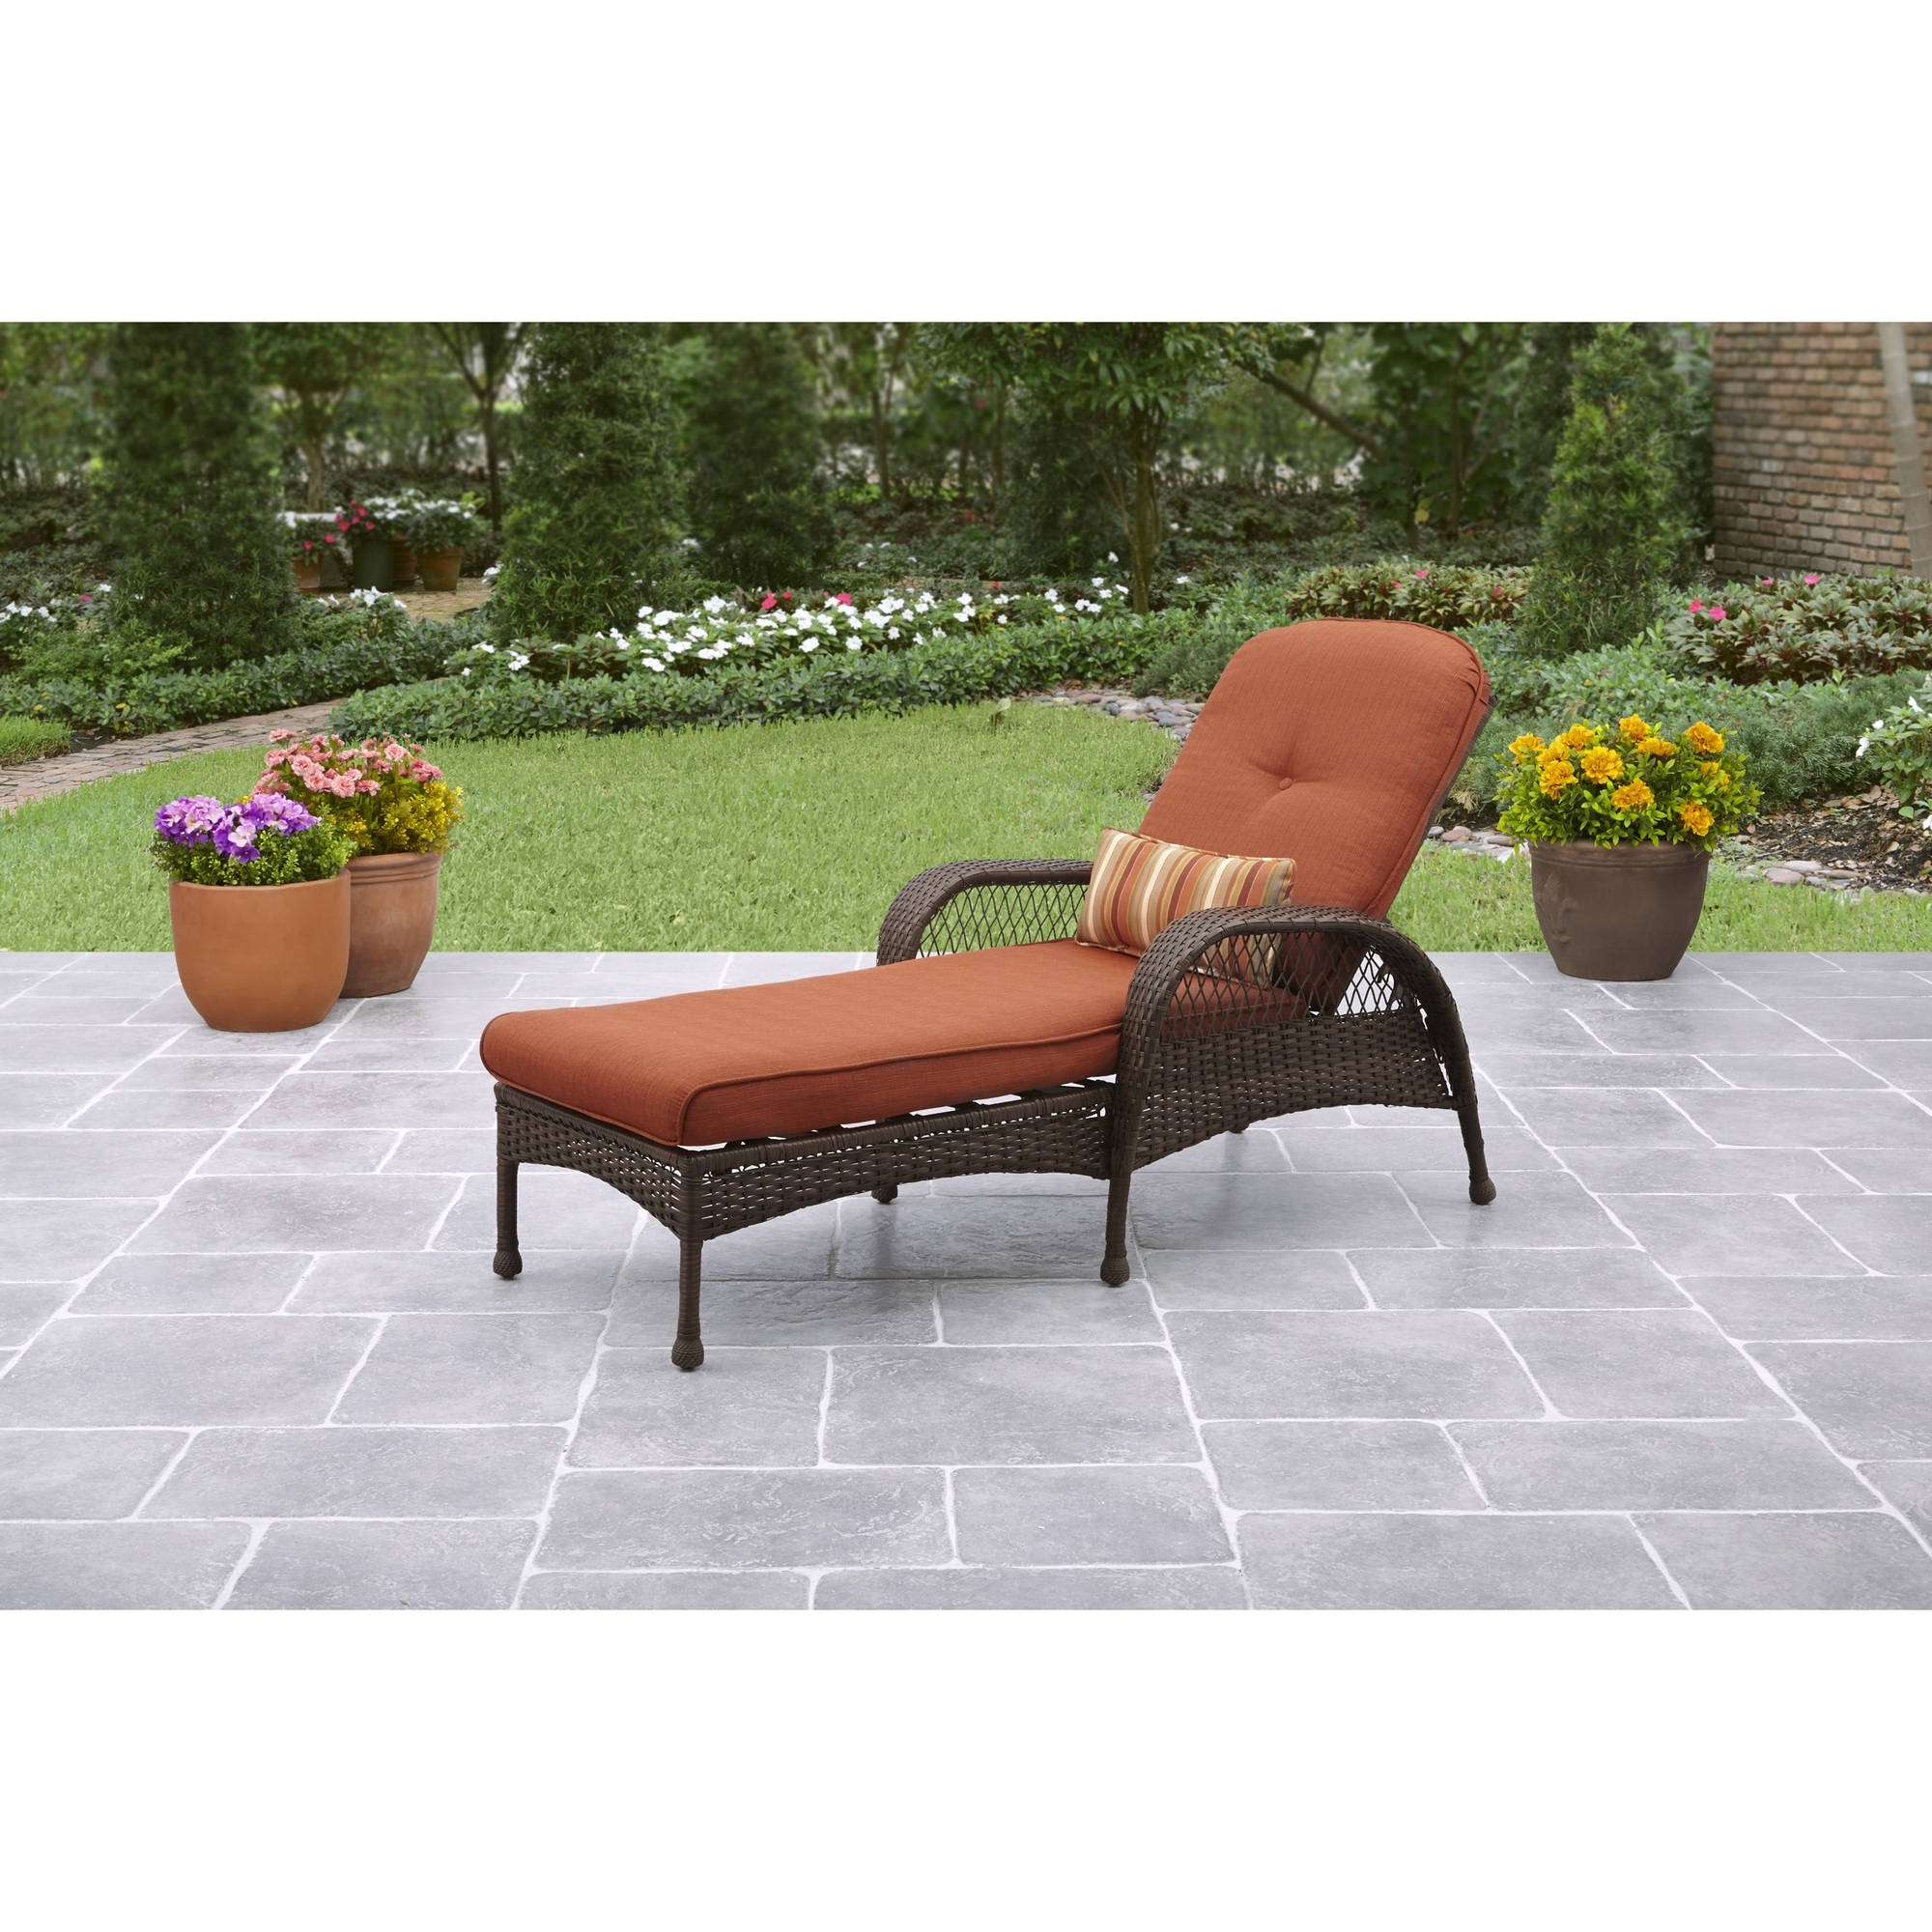 Well Known Macys Outdoor Chaise Lounge Chairs Throughout Outdoor : Outdoor Chaise Lounge Chair Pool Lounge Chairs Outdoor (View 2 of 15)